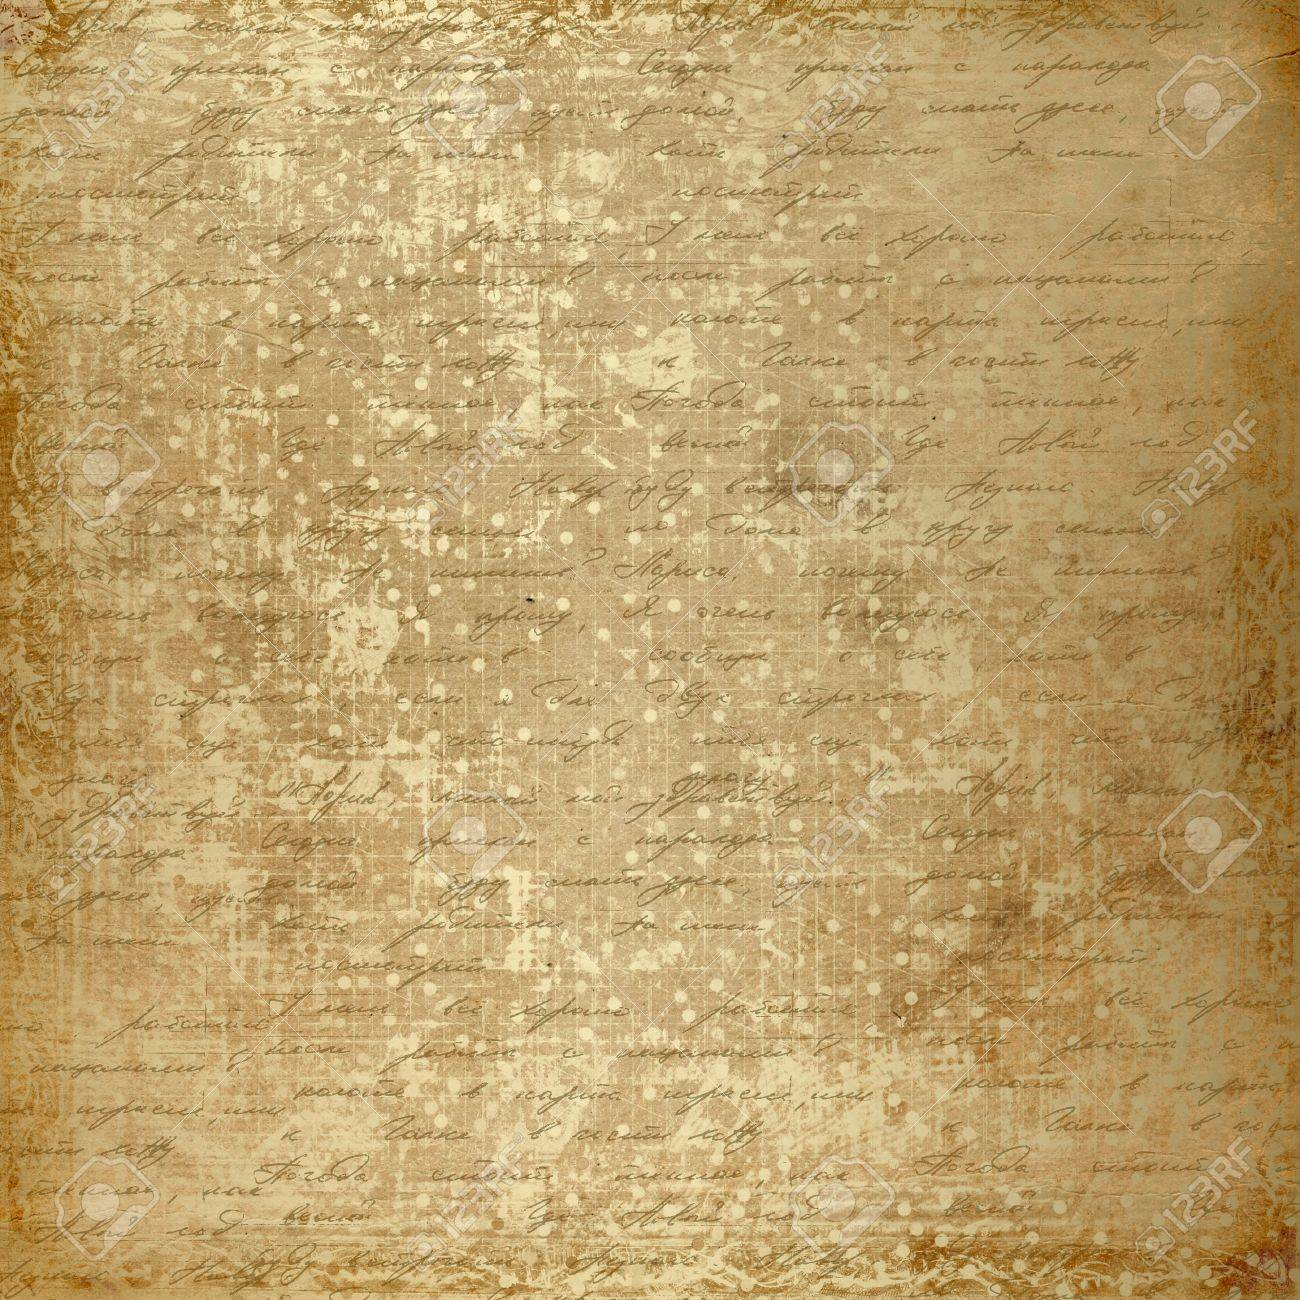 Scrapbook paper design - Grunge Old Paper Design In Scrapbooking Style With Handwriting Stock Photo 9027489